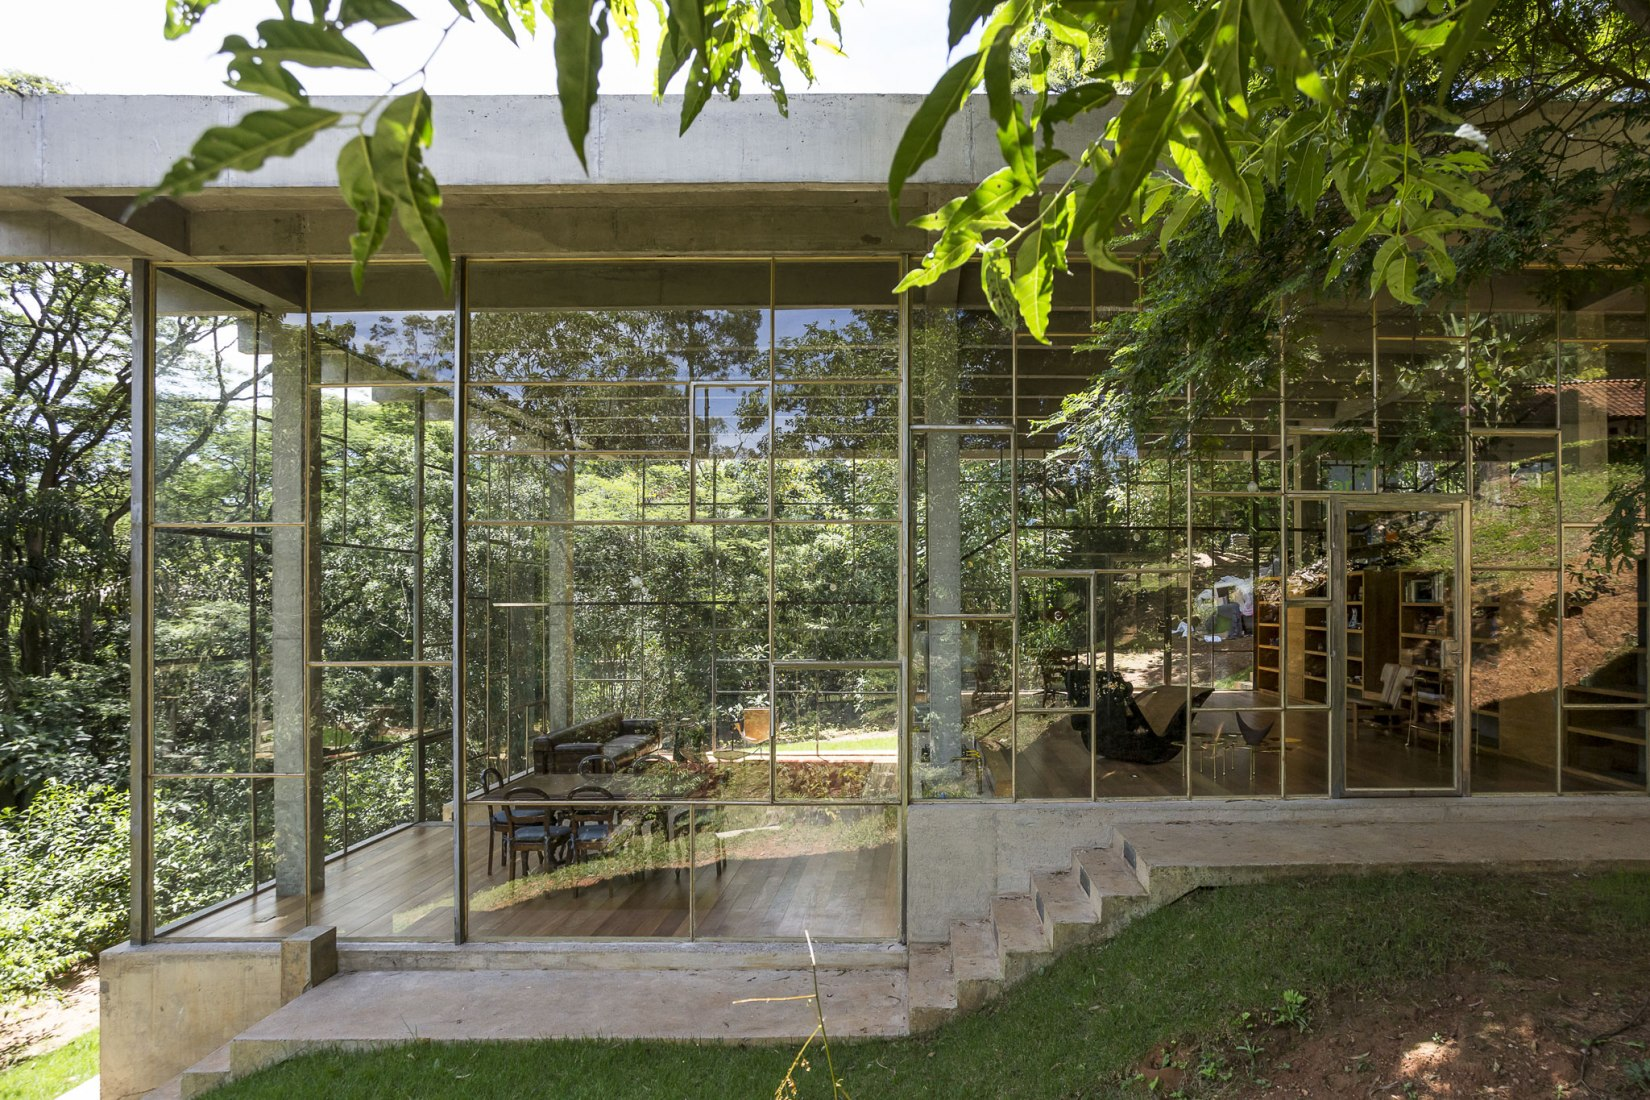 Library house in the vinhedo forest by  Atelier Branco. Photograph by Ricardo Bassetti.